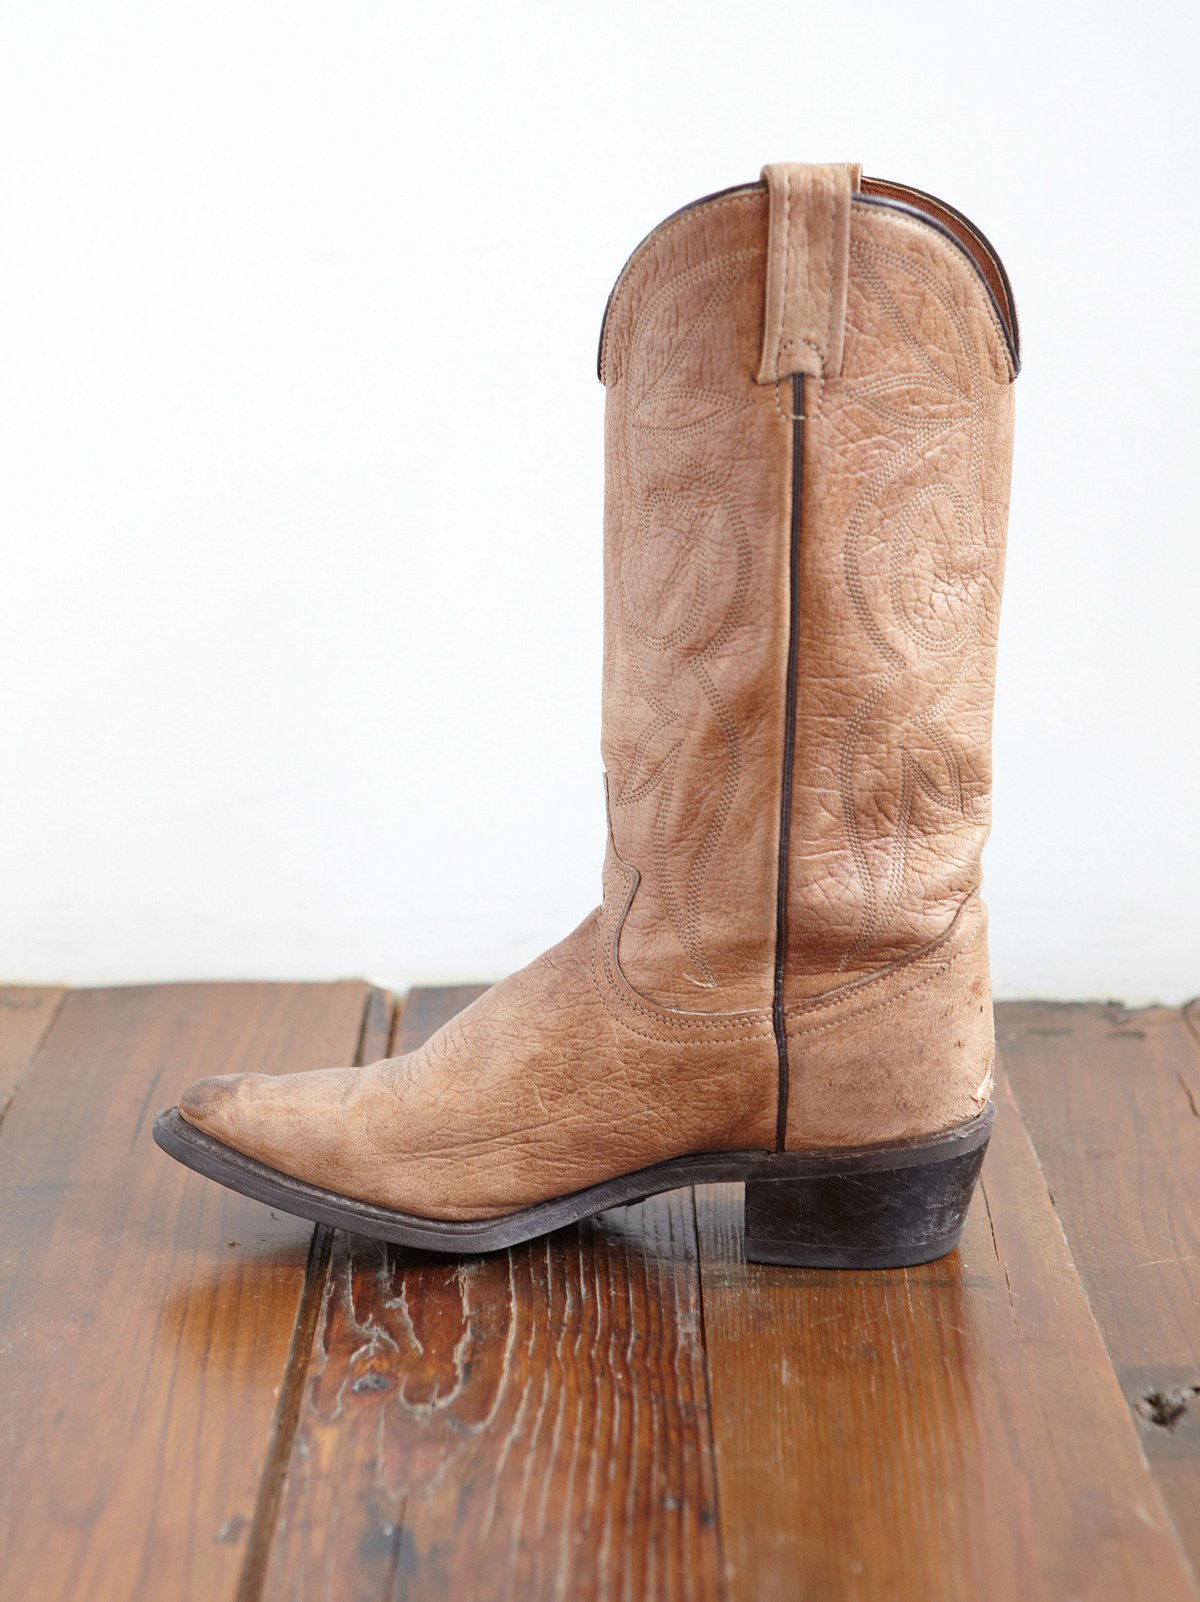 Vintage Distressed Leather Cowboy Boots